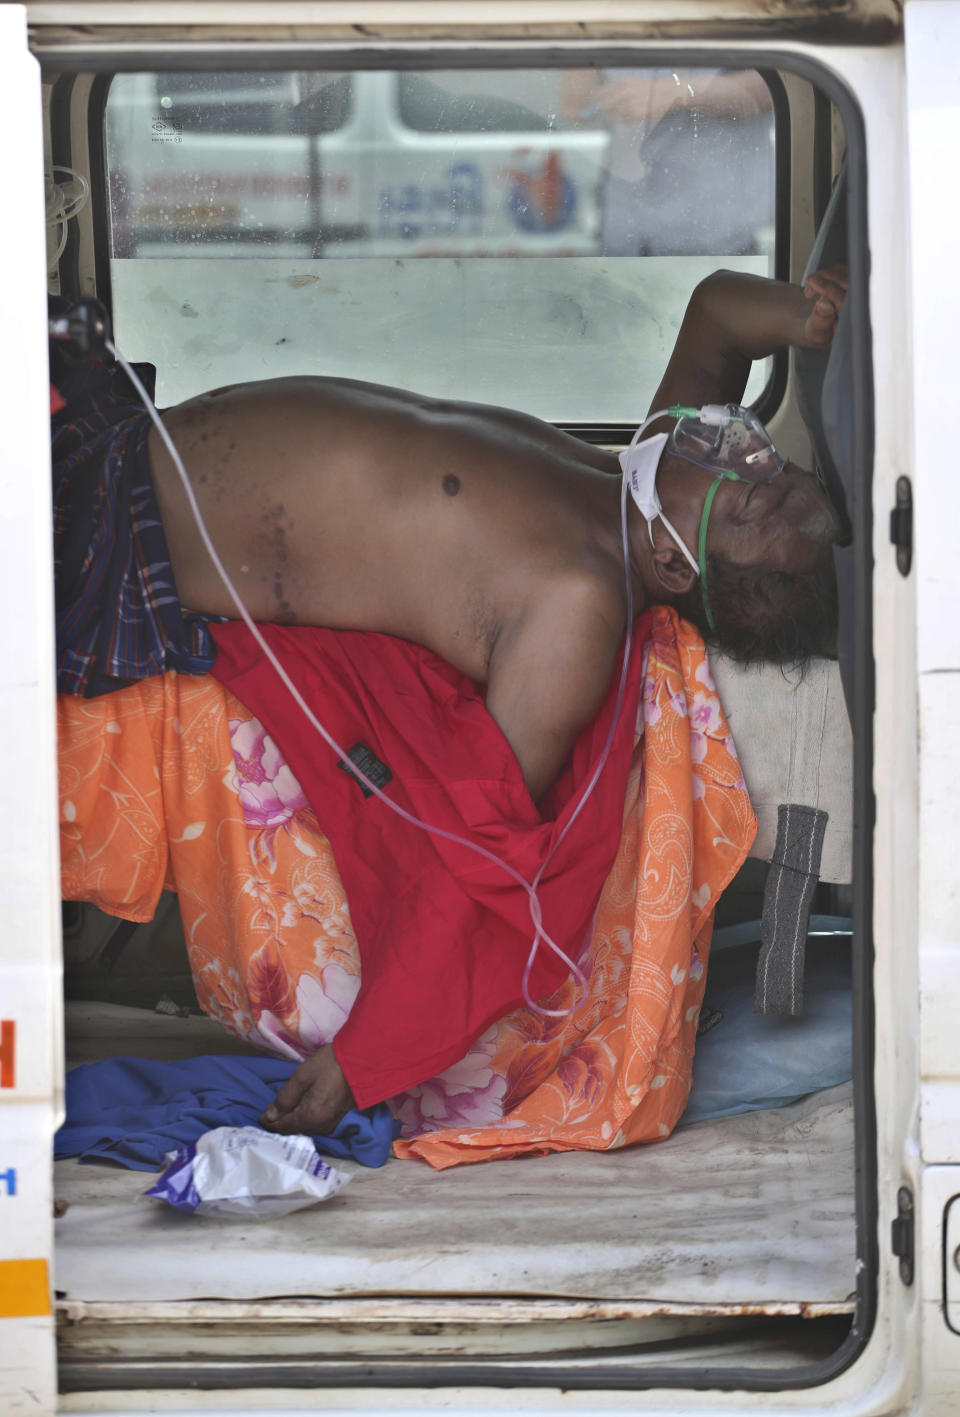 A COVID-19 patient lies inside a vehicle to be attended to and admitted in a dedicated COVID-19 government hospital in Ahmedabad, India, Thursday, April 22, 2021. India is putting oxygen tankers on special express trains as major hospitals in New Delhi begged on social media for more supplies to save COVID-19 patients who are struggling to breathe. Hospitals in New Delhi and some of the worst-hit states reported being critically short of beds and oxygen Saturday. (AP Photo/Ajit Solanki)